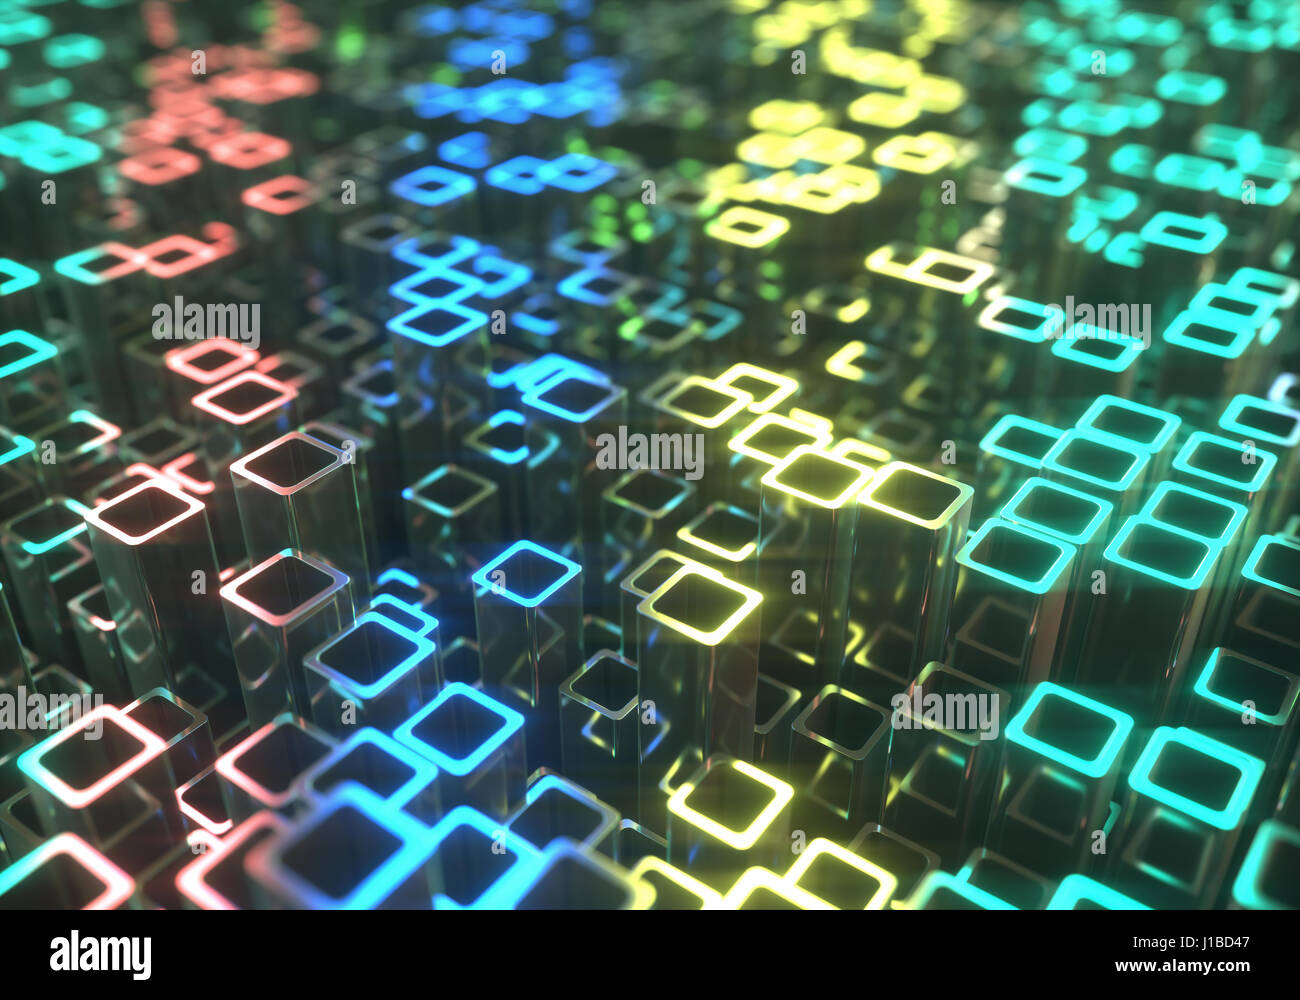 3D illustration. Abstract background made by metallic tubes reflecting colored lights. - Stock Image